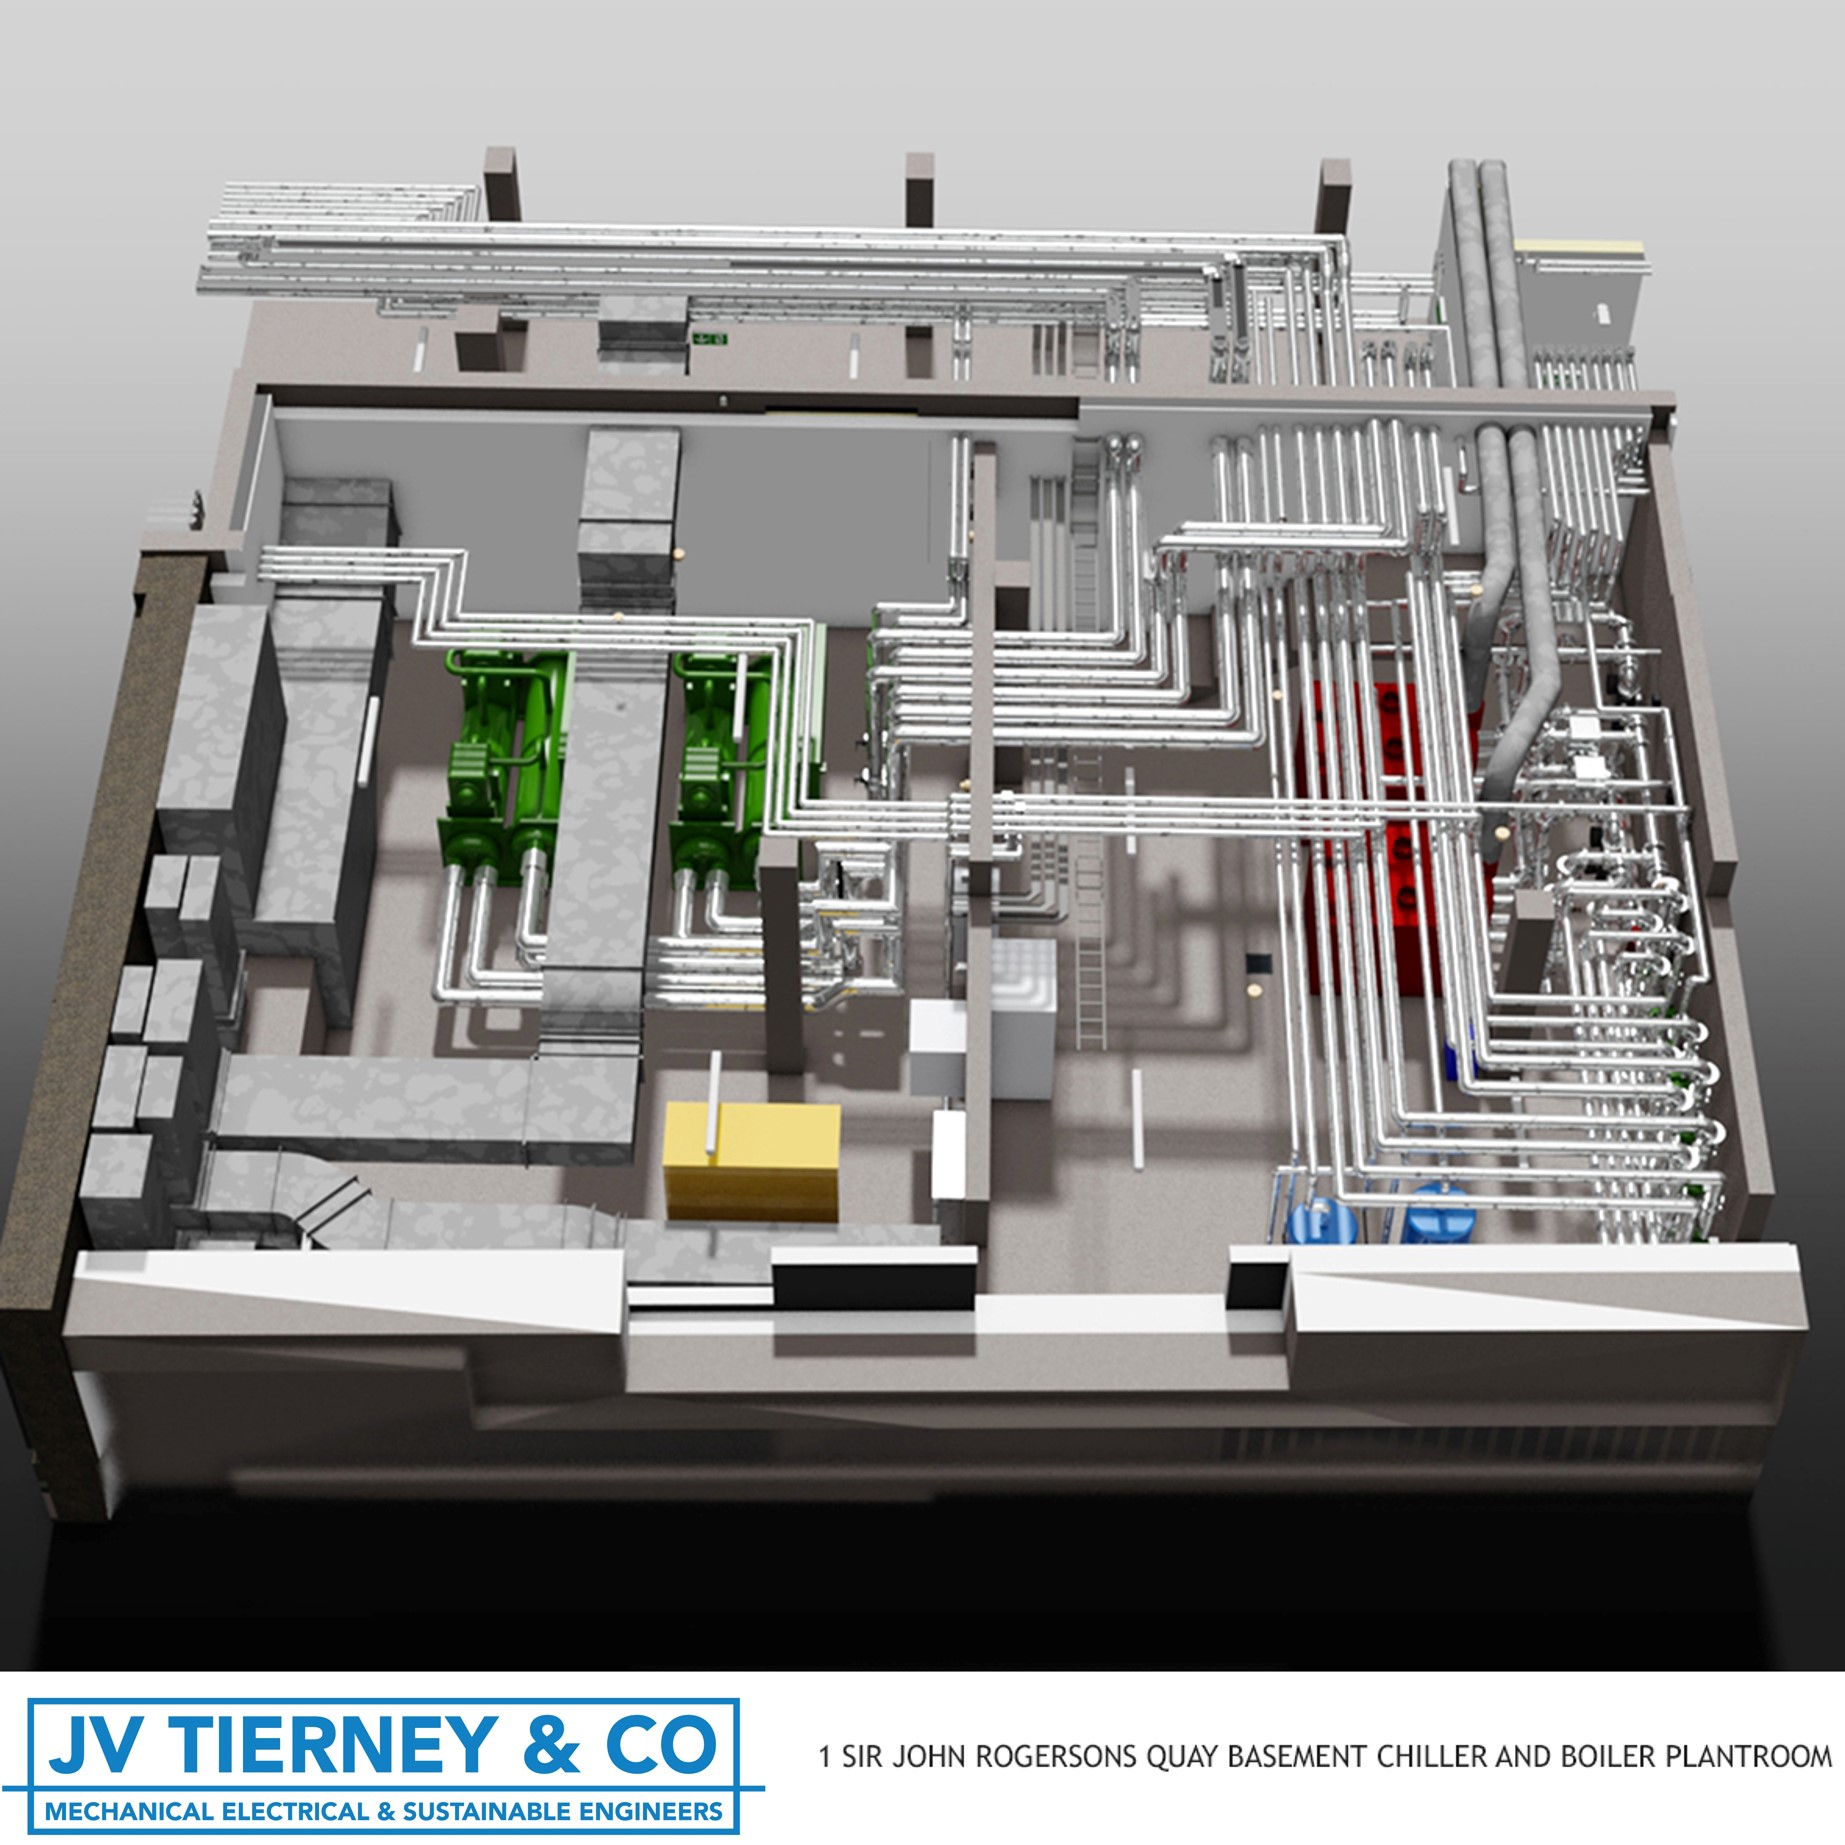 Mechanical Room Layout: JVTierney Consulting Engineers Ireland